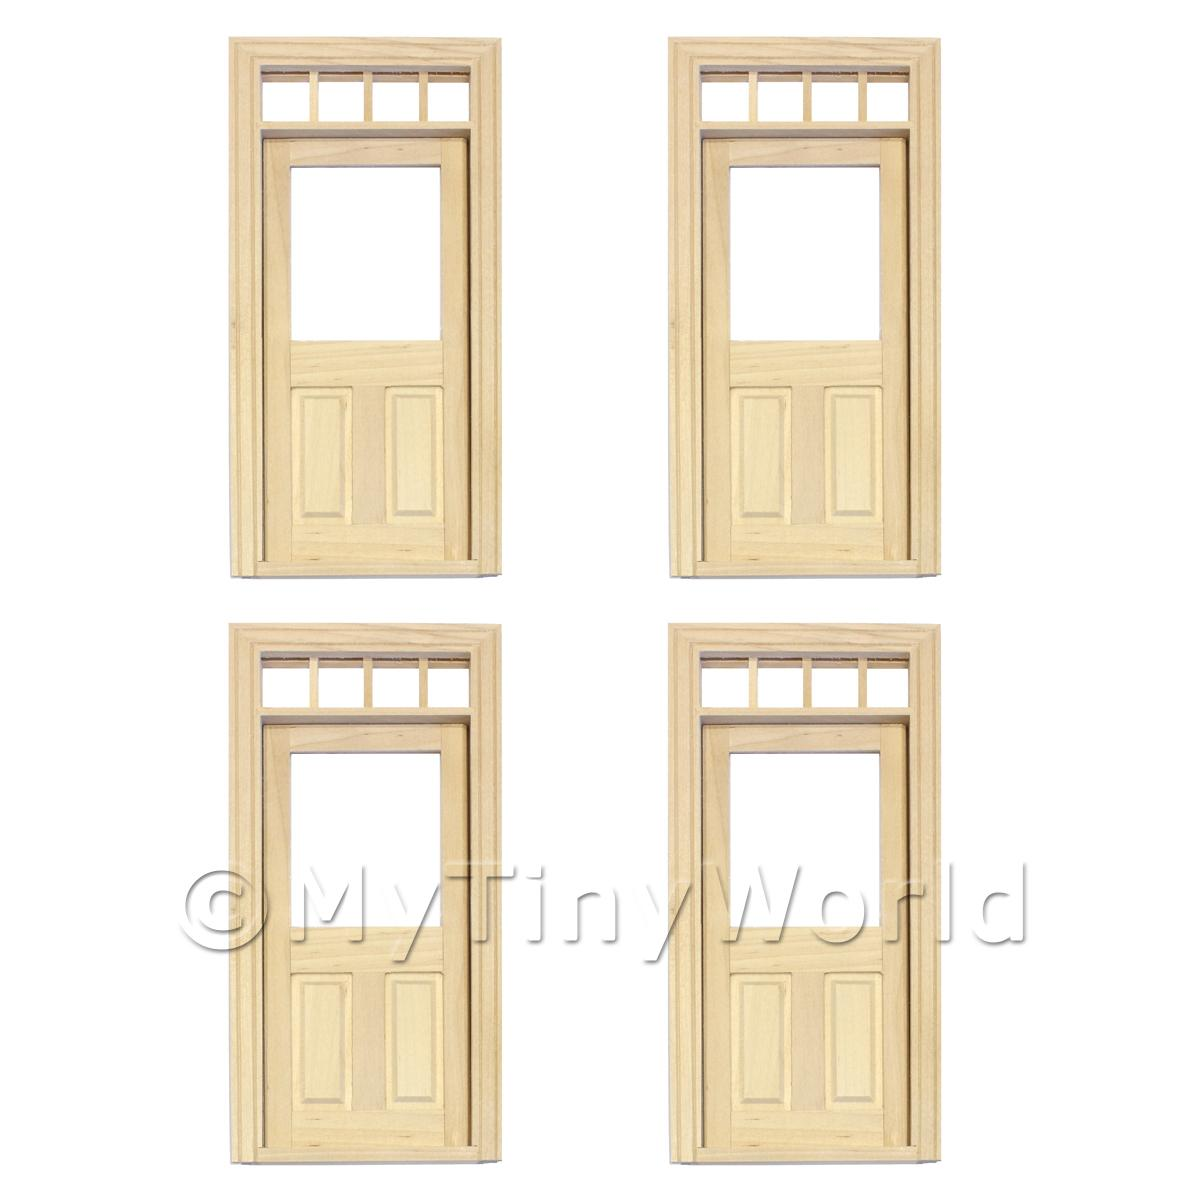 Dolls House Miniature  | 4 x Dolls House Decorative Wood Door With Glazed Pane And 4 Open Panes